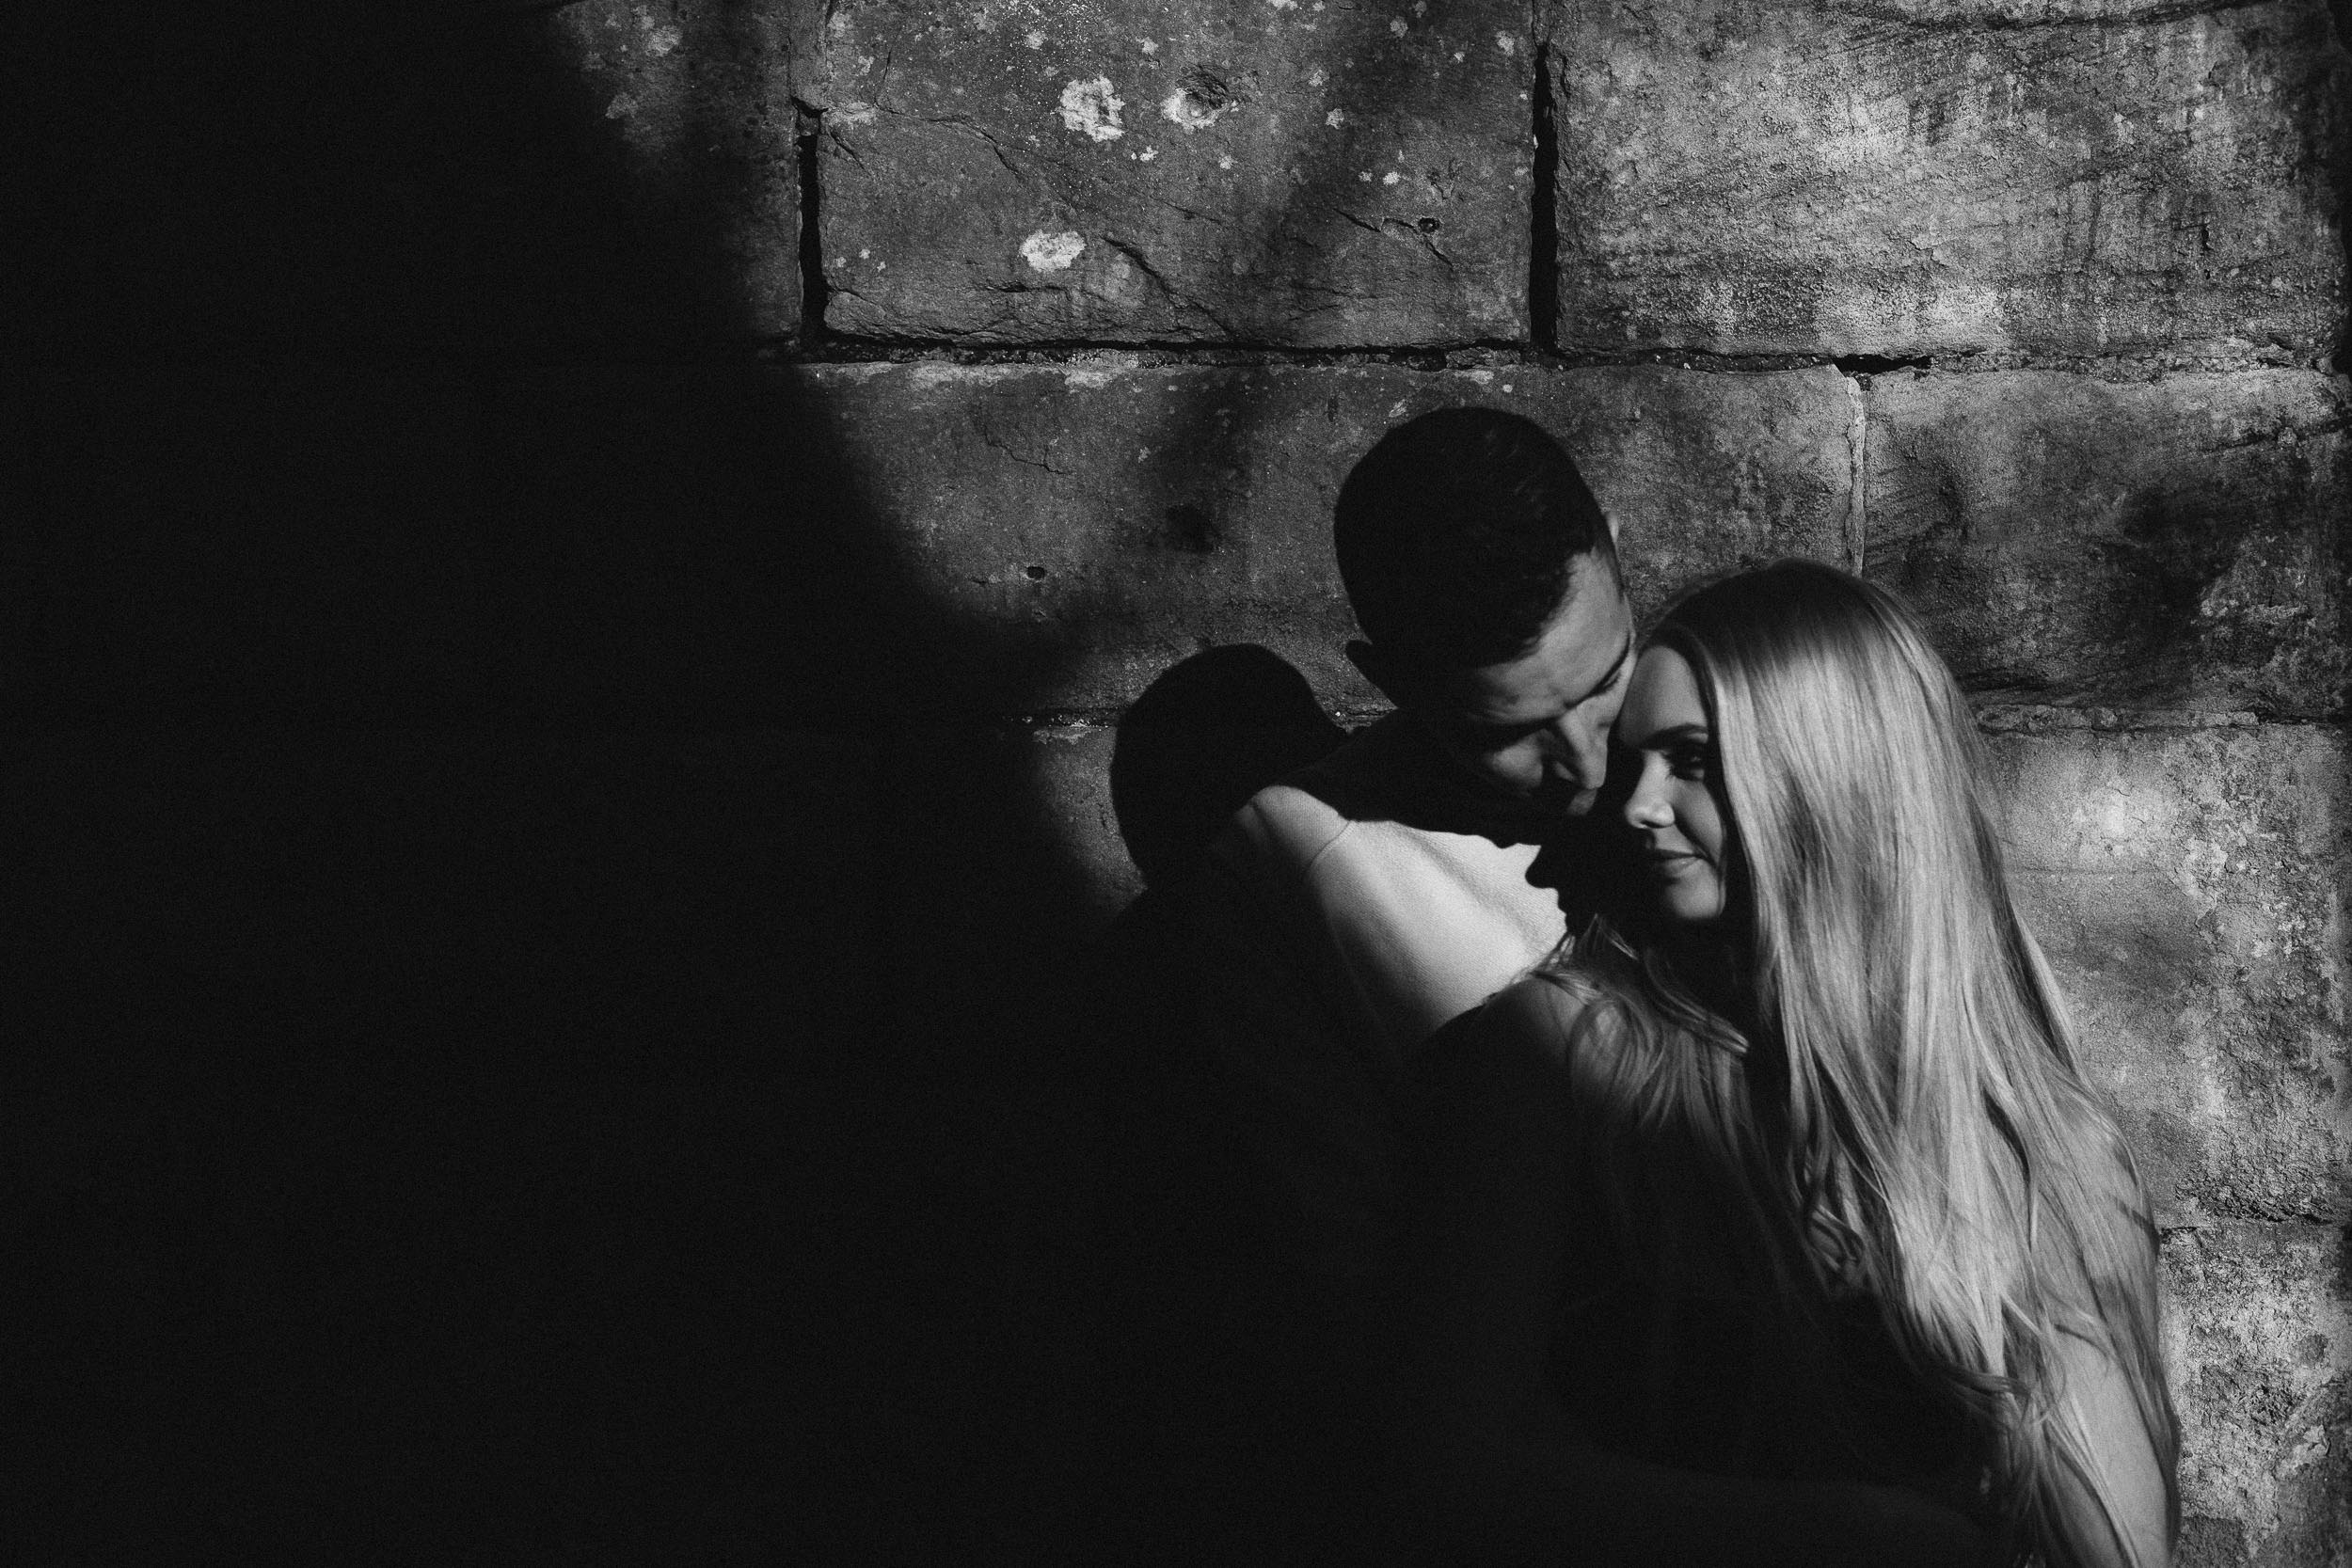 A black and white photo of an engaged couple nuzzling against a wall with deep shadow all around